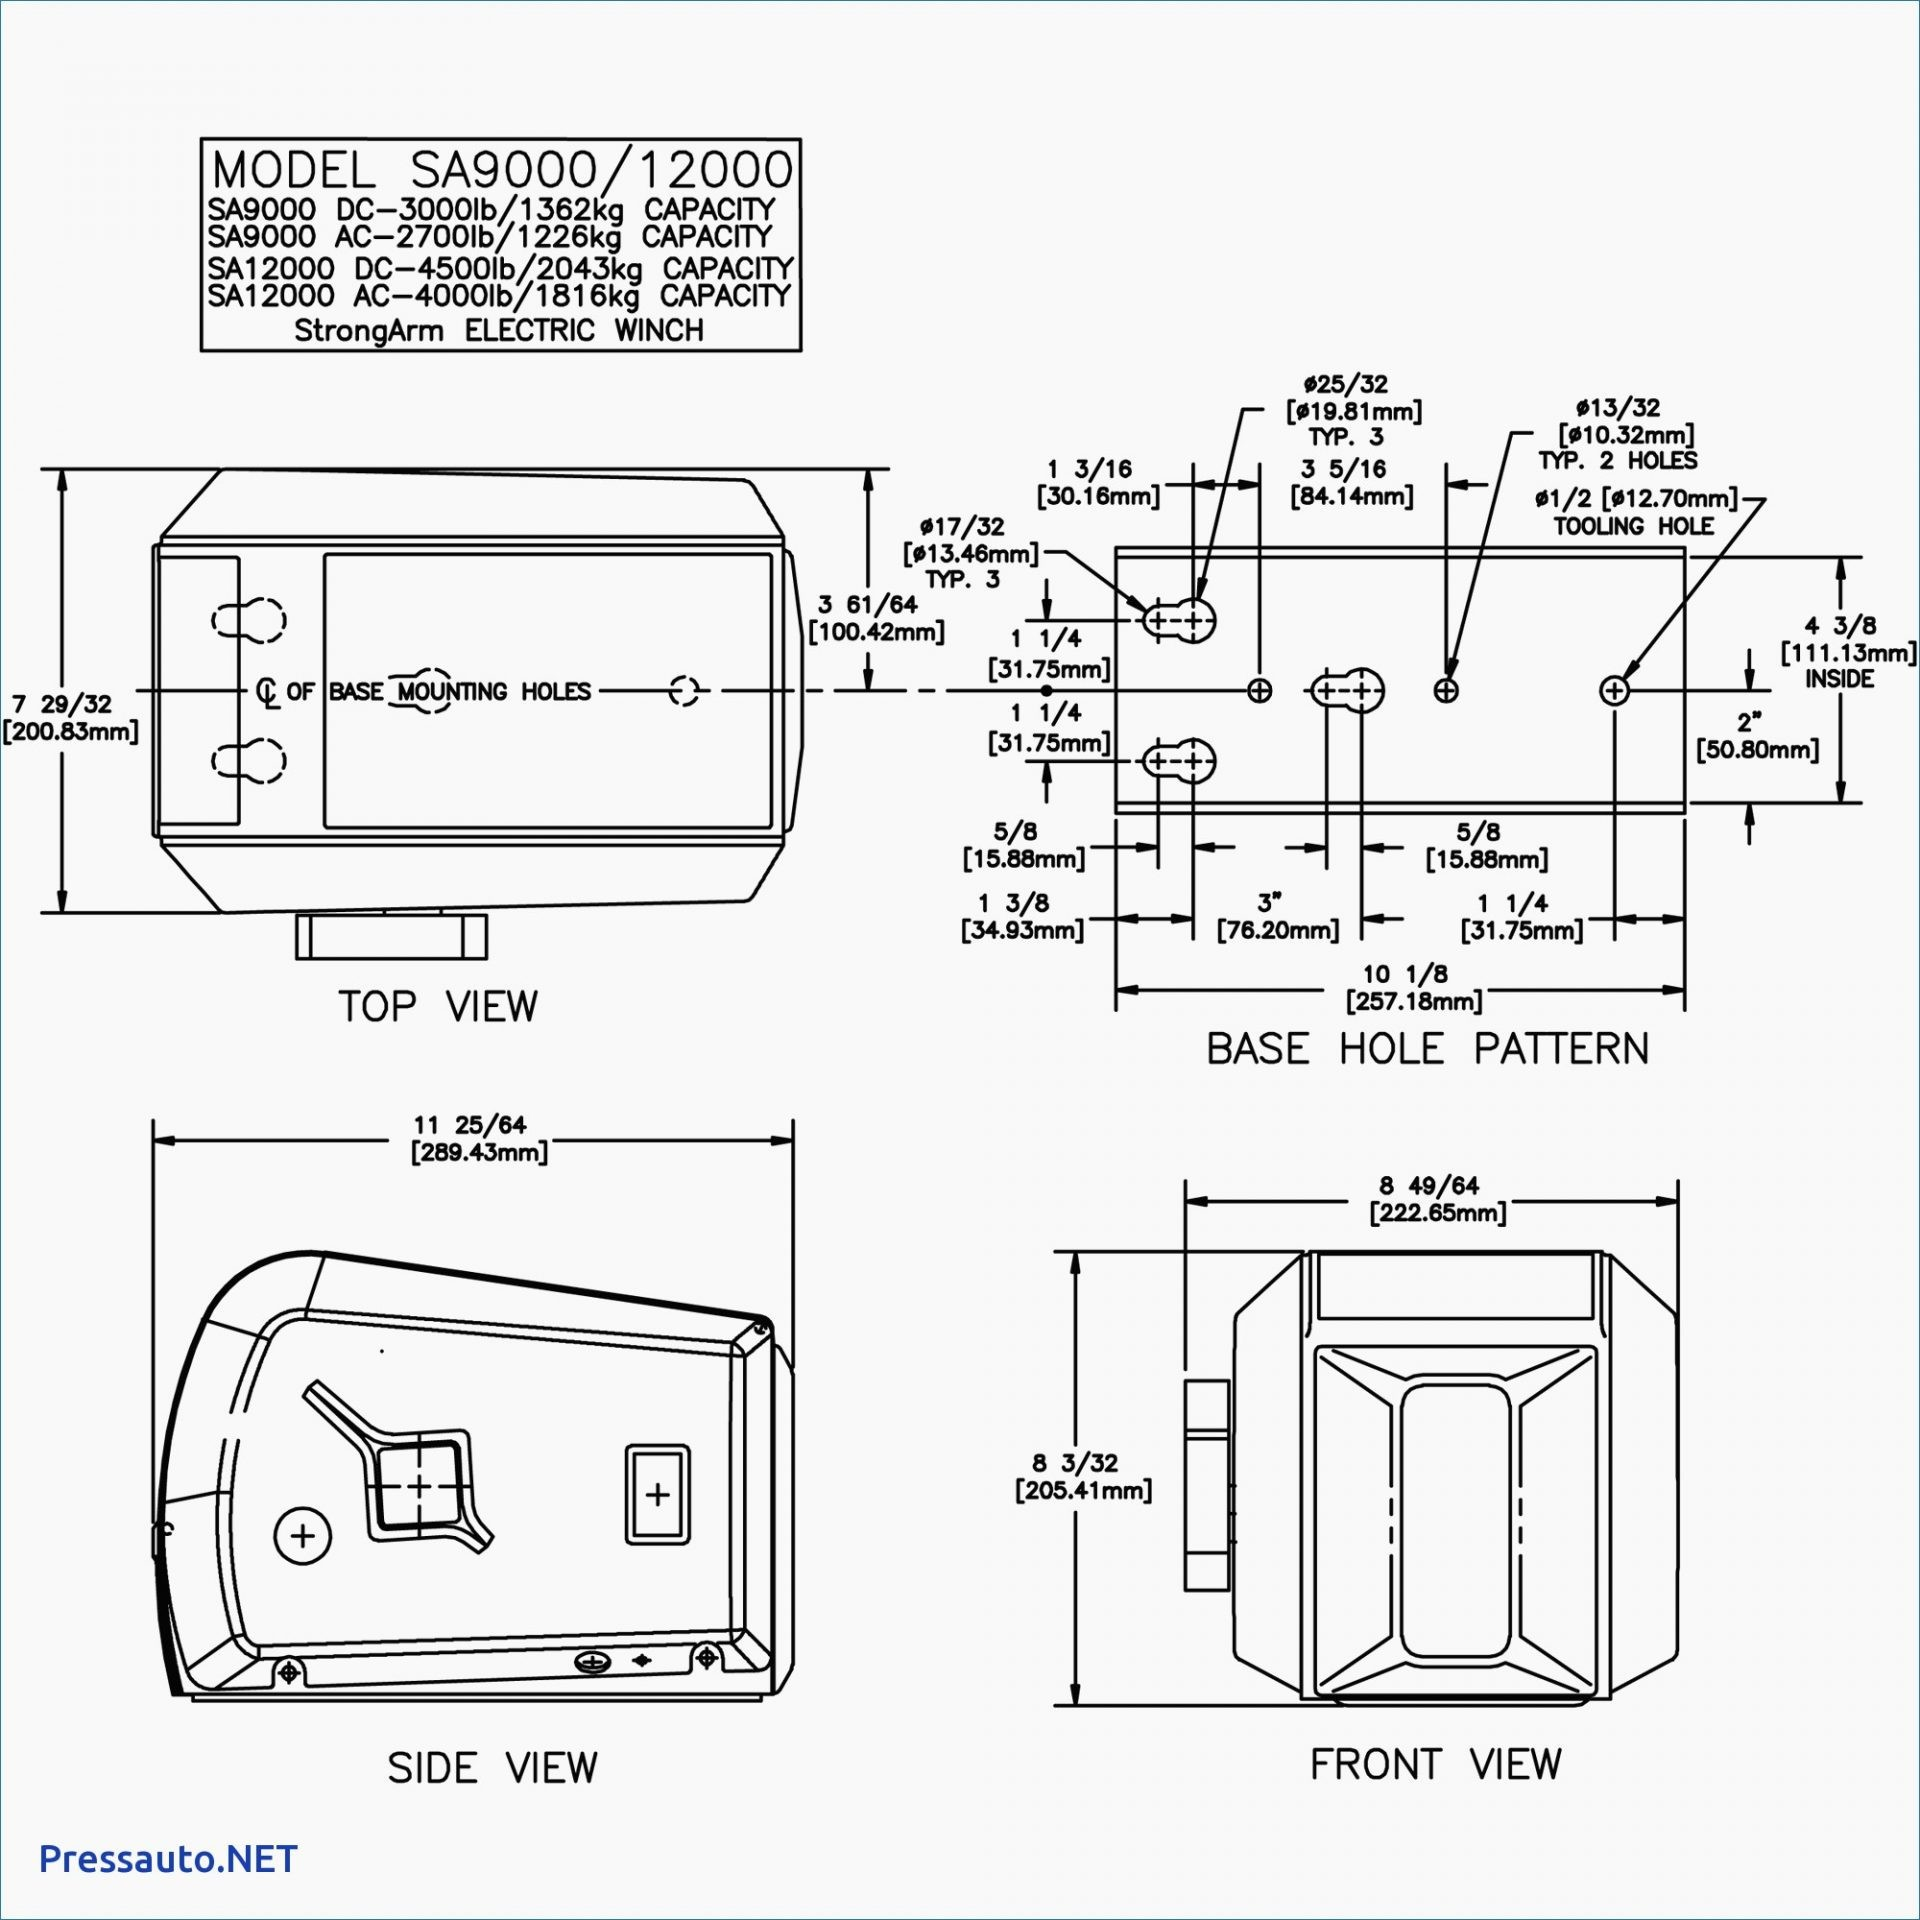 Wiring Diagram for Warn Winch Best Winch solenoid Wiring Diagram Roc Grp